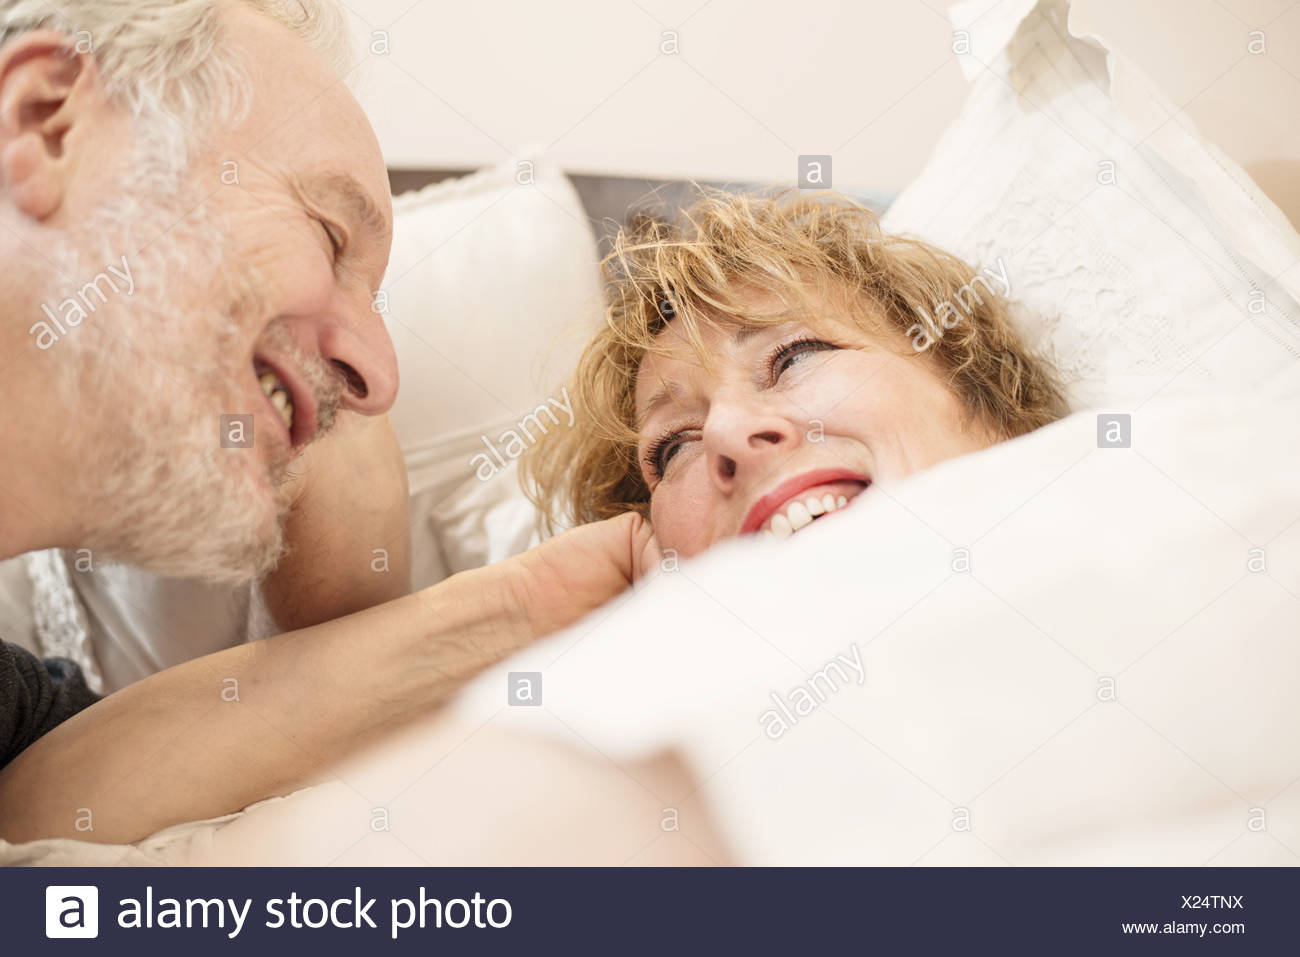 Couple in bed, smiling - Stock Image